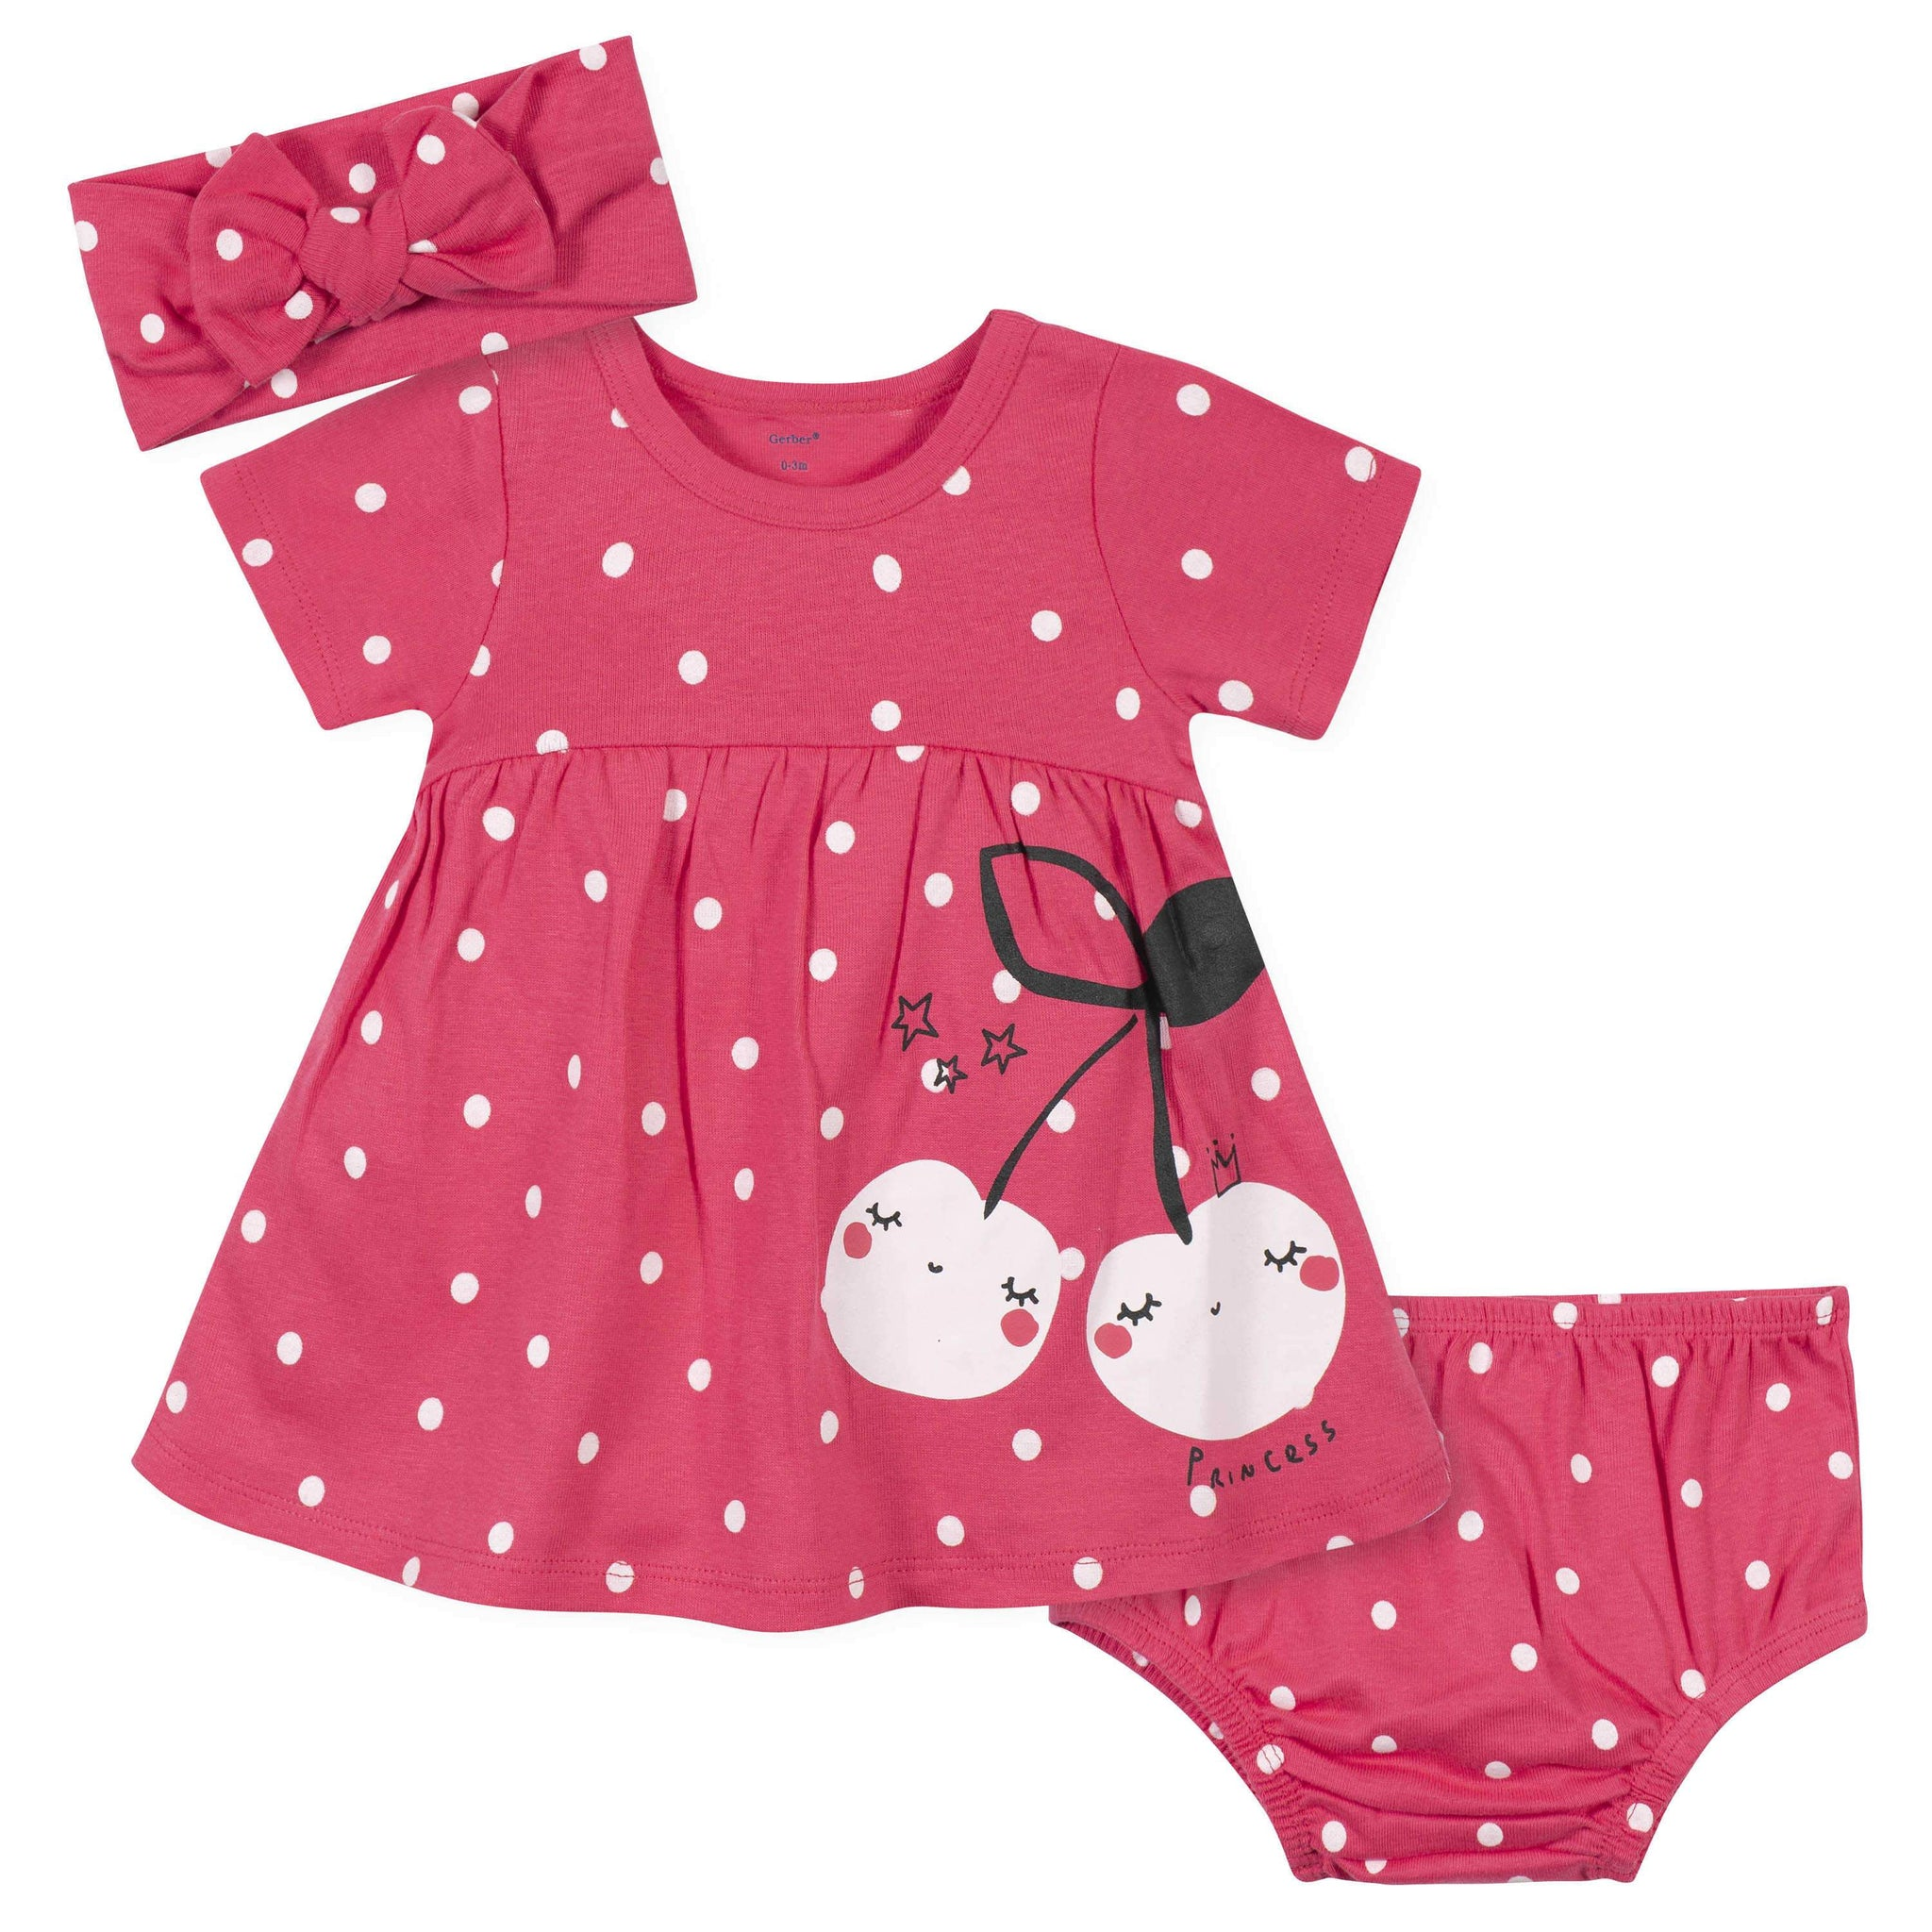 3-Piece Baby Girls Cherry Dots Dress, Diaper Cover, and Headband Set